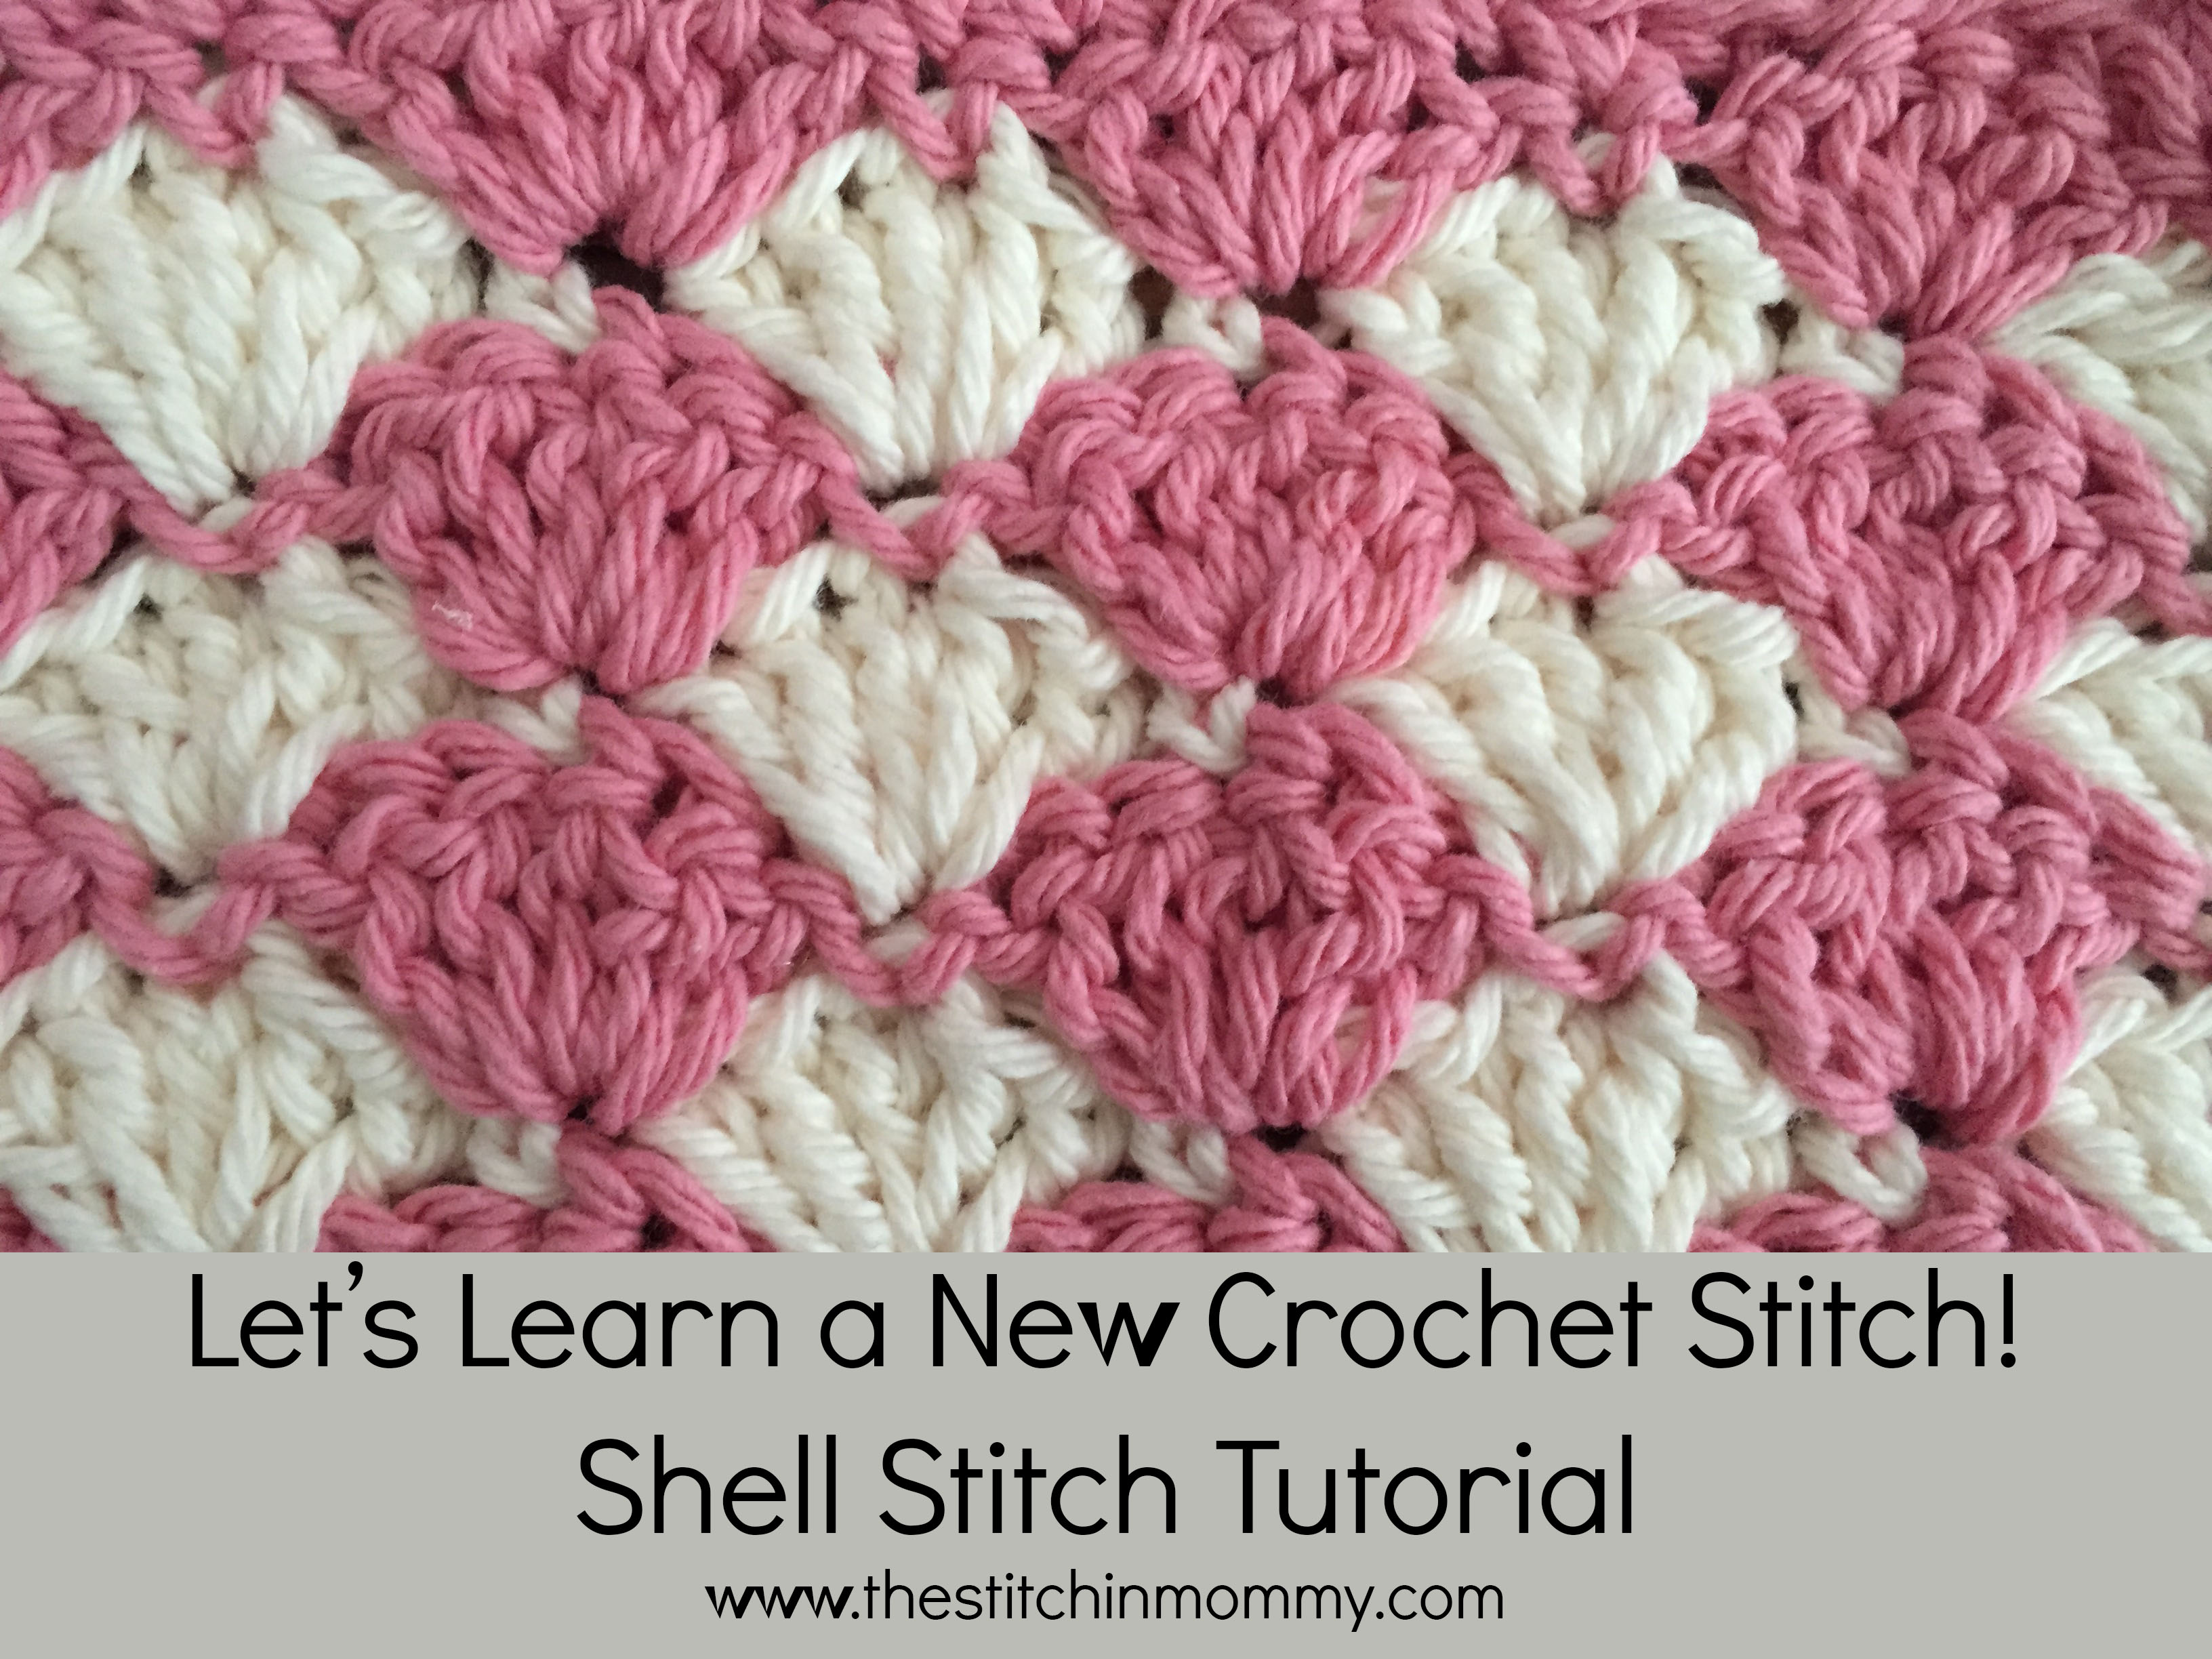 Crochet Stitches Shell Instructions : Lets Learn a New Crochet Stitch - Shell Stitch Tutorial www ...